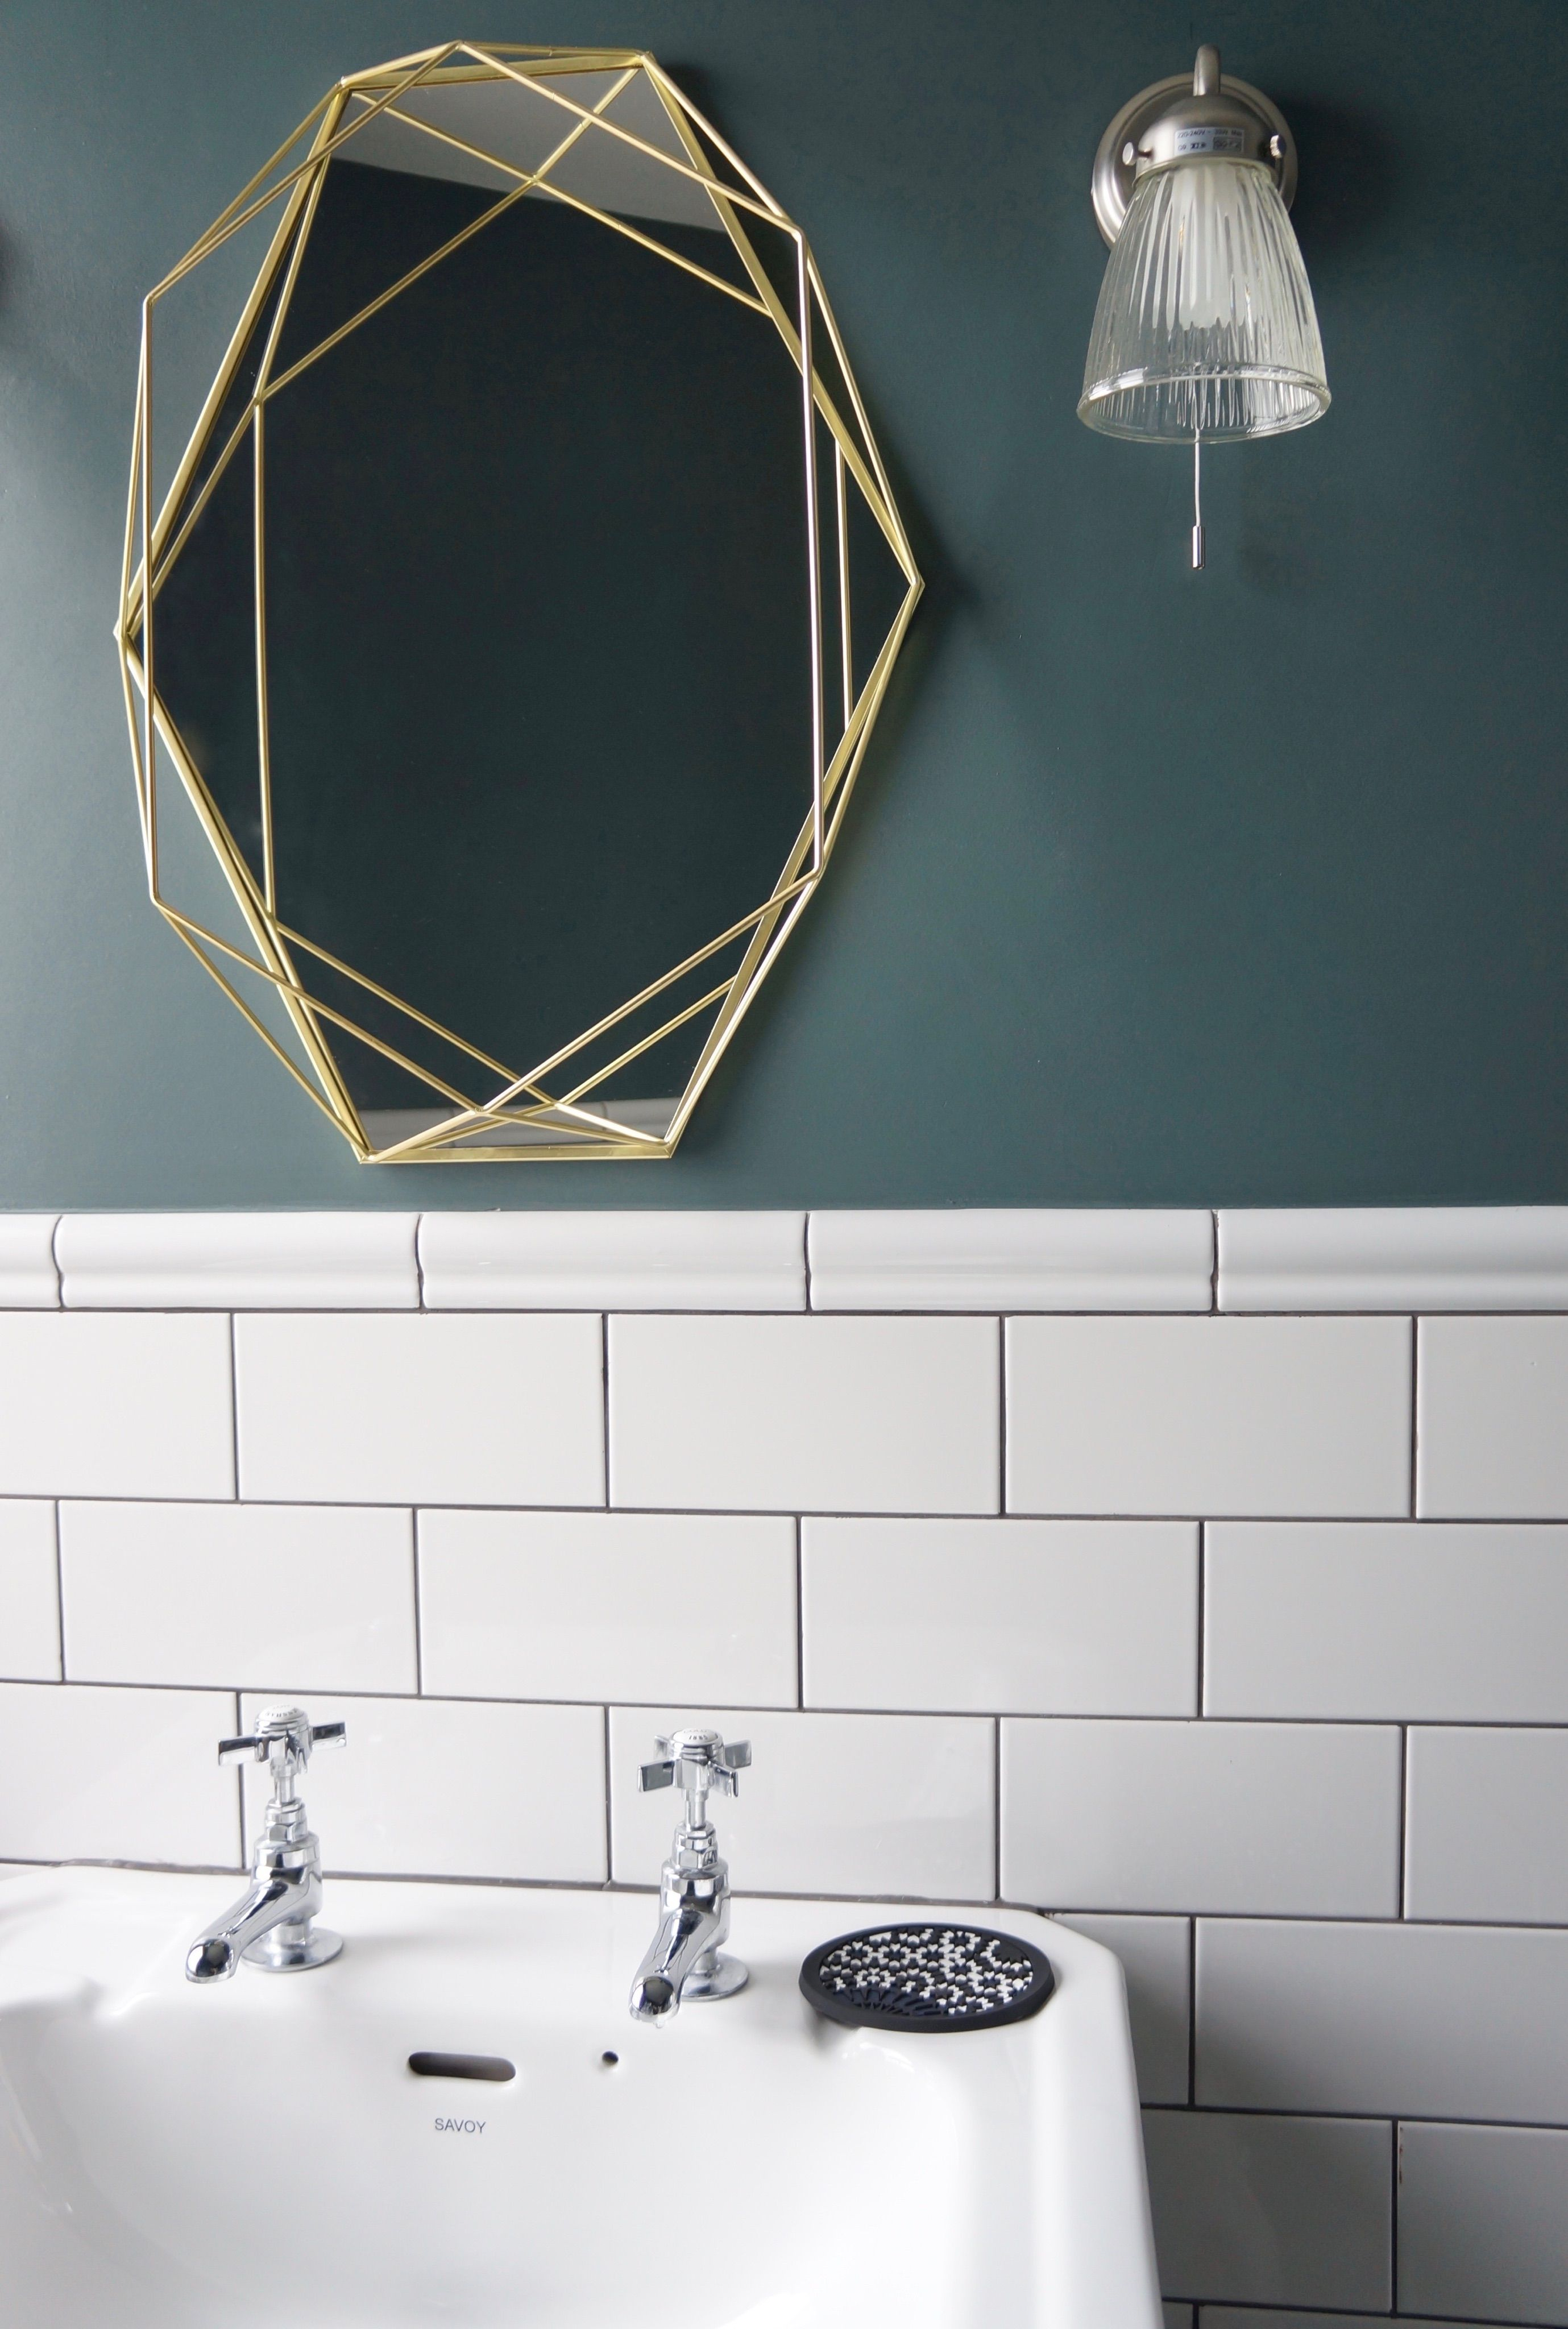 Inchyra blue walls and metro tiles in this east London bathroom ...